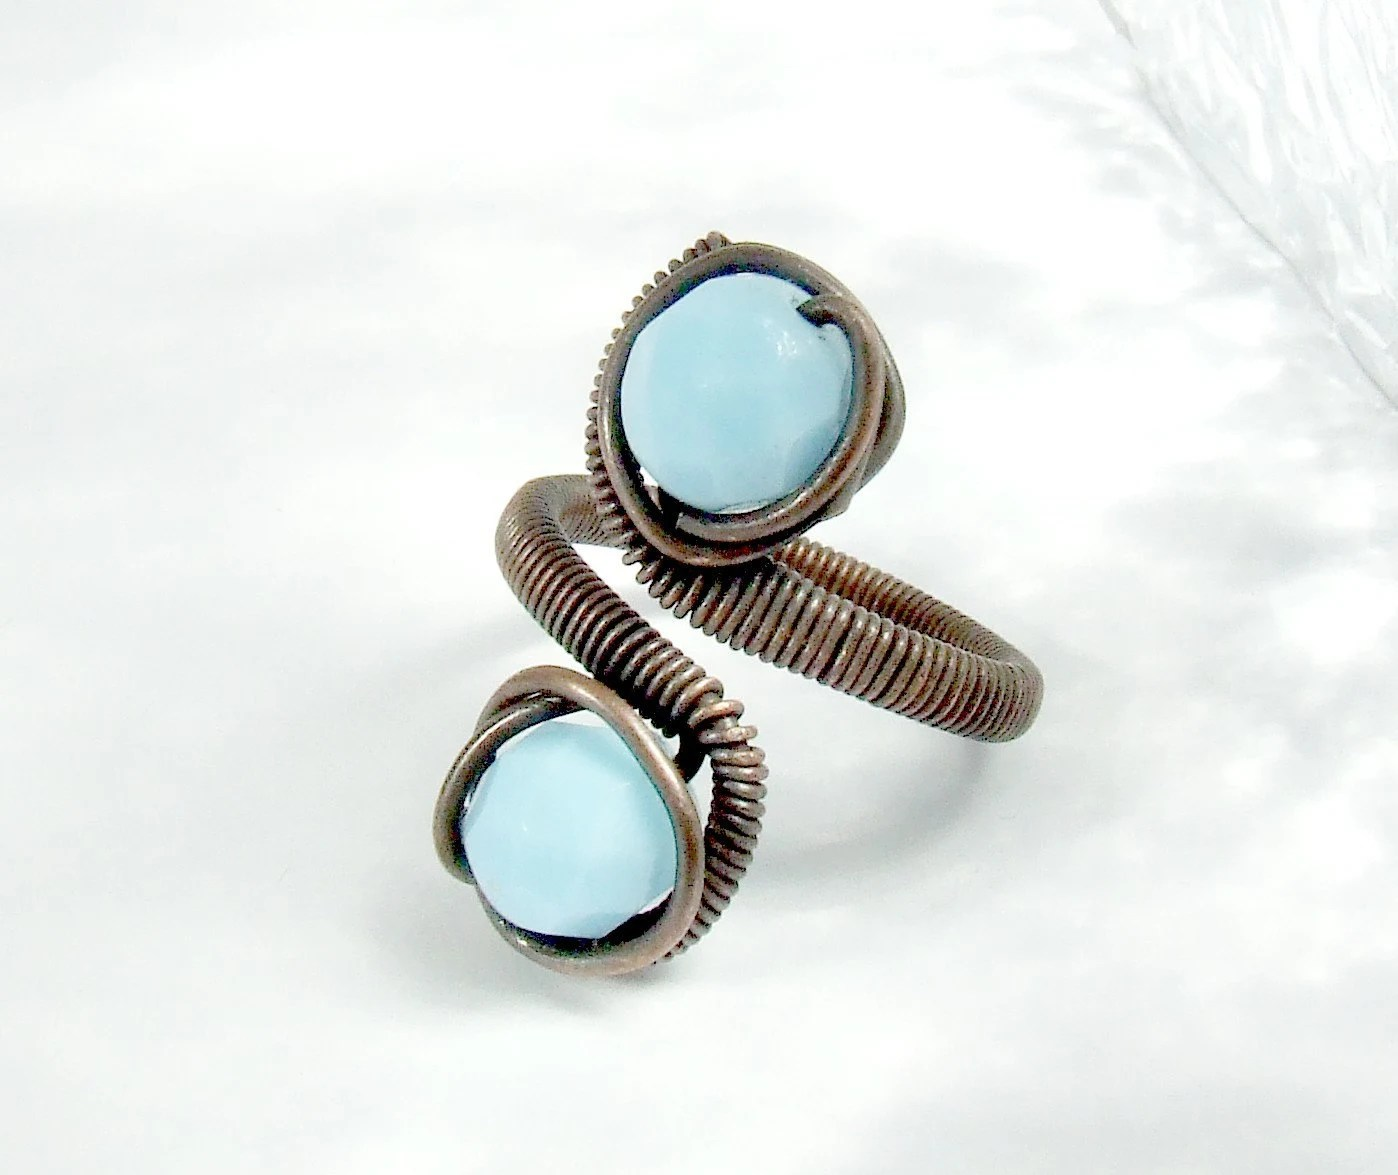 15% SALE Blue copper ring with turquoise glass beads handmade wire wrapped jewelry - VeraNasfaJewelry